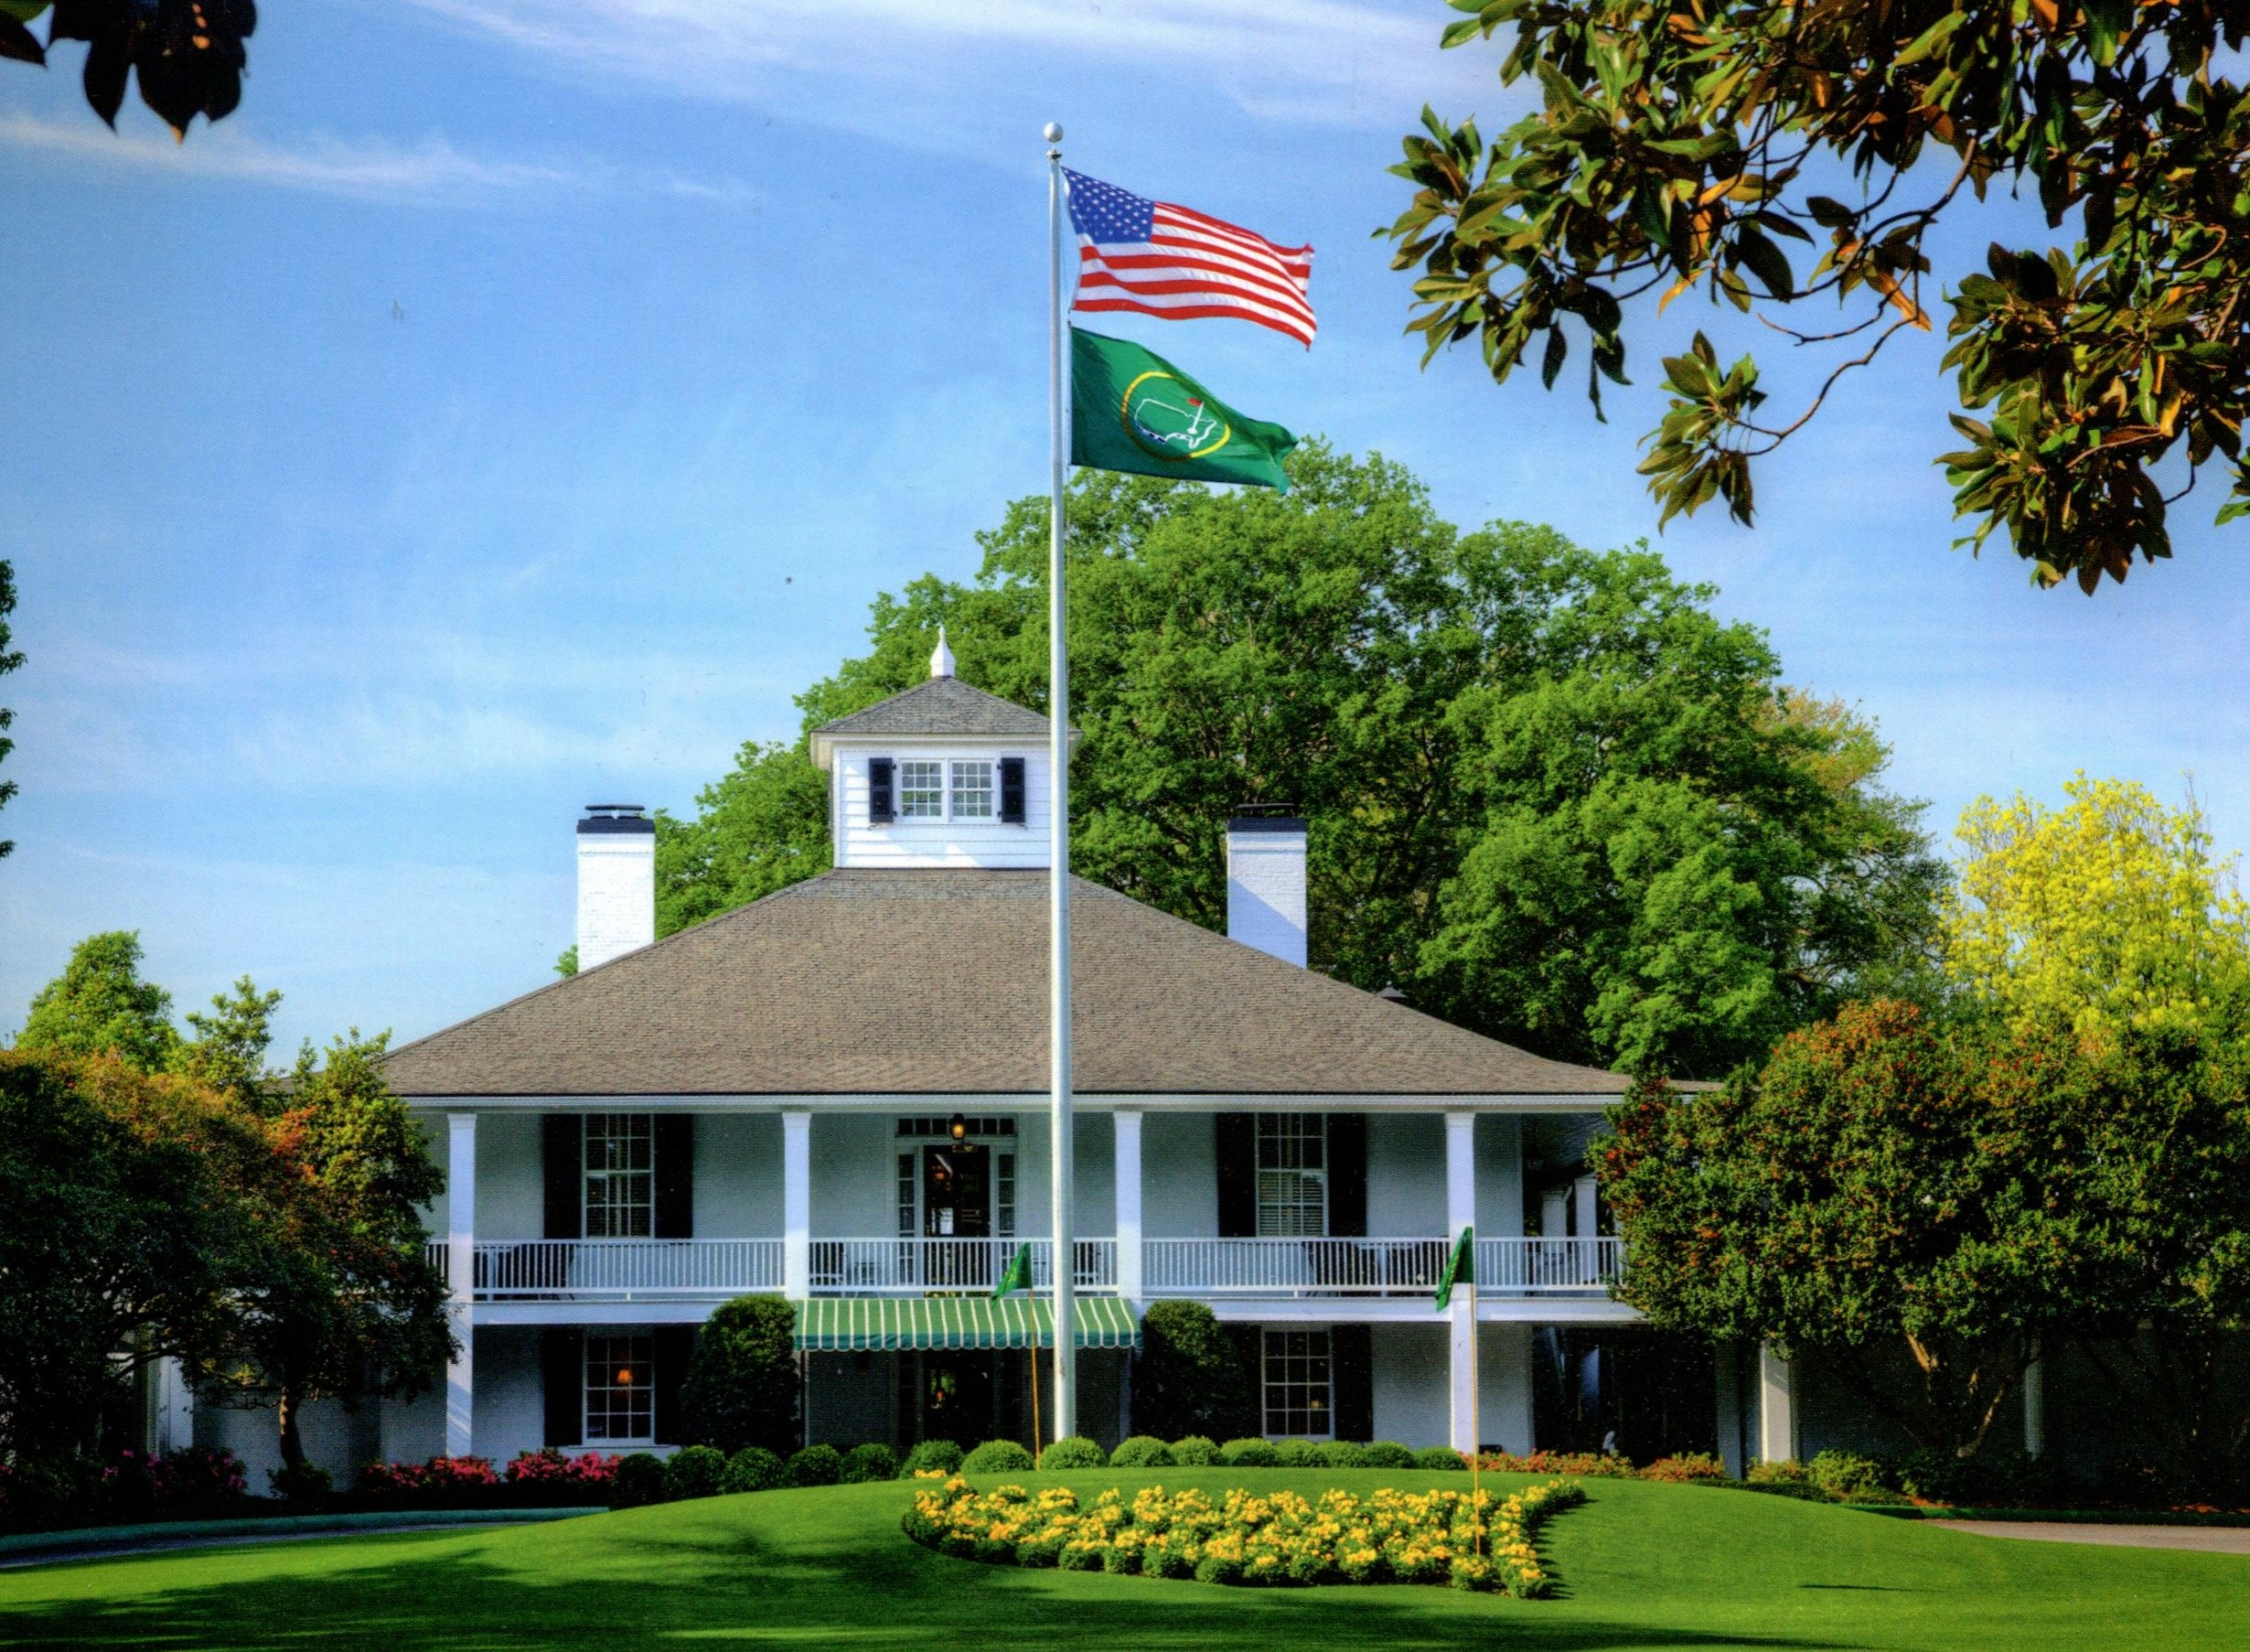 A photo of the club house at Augusta National Golf Club.